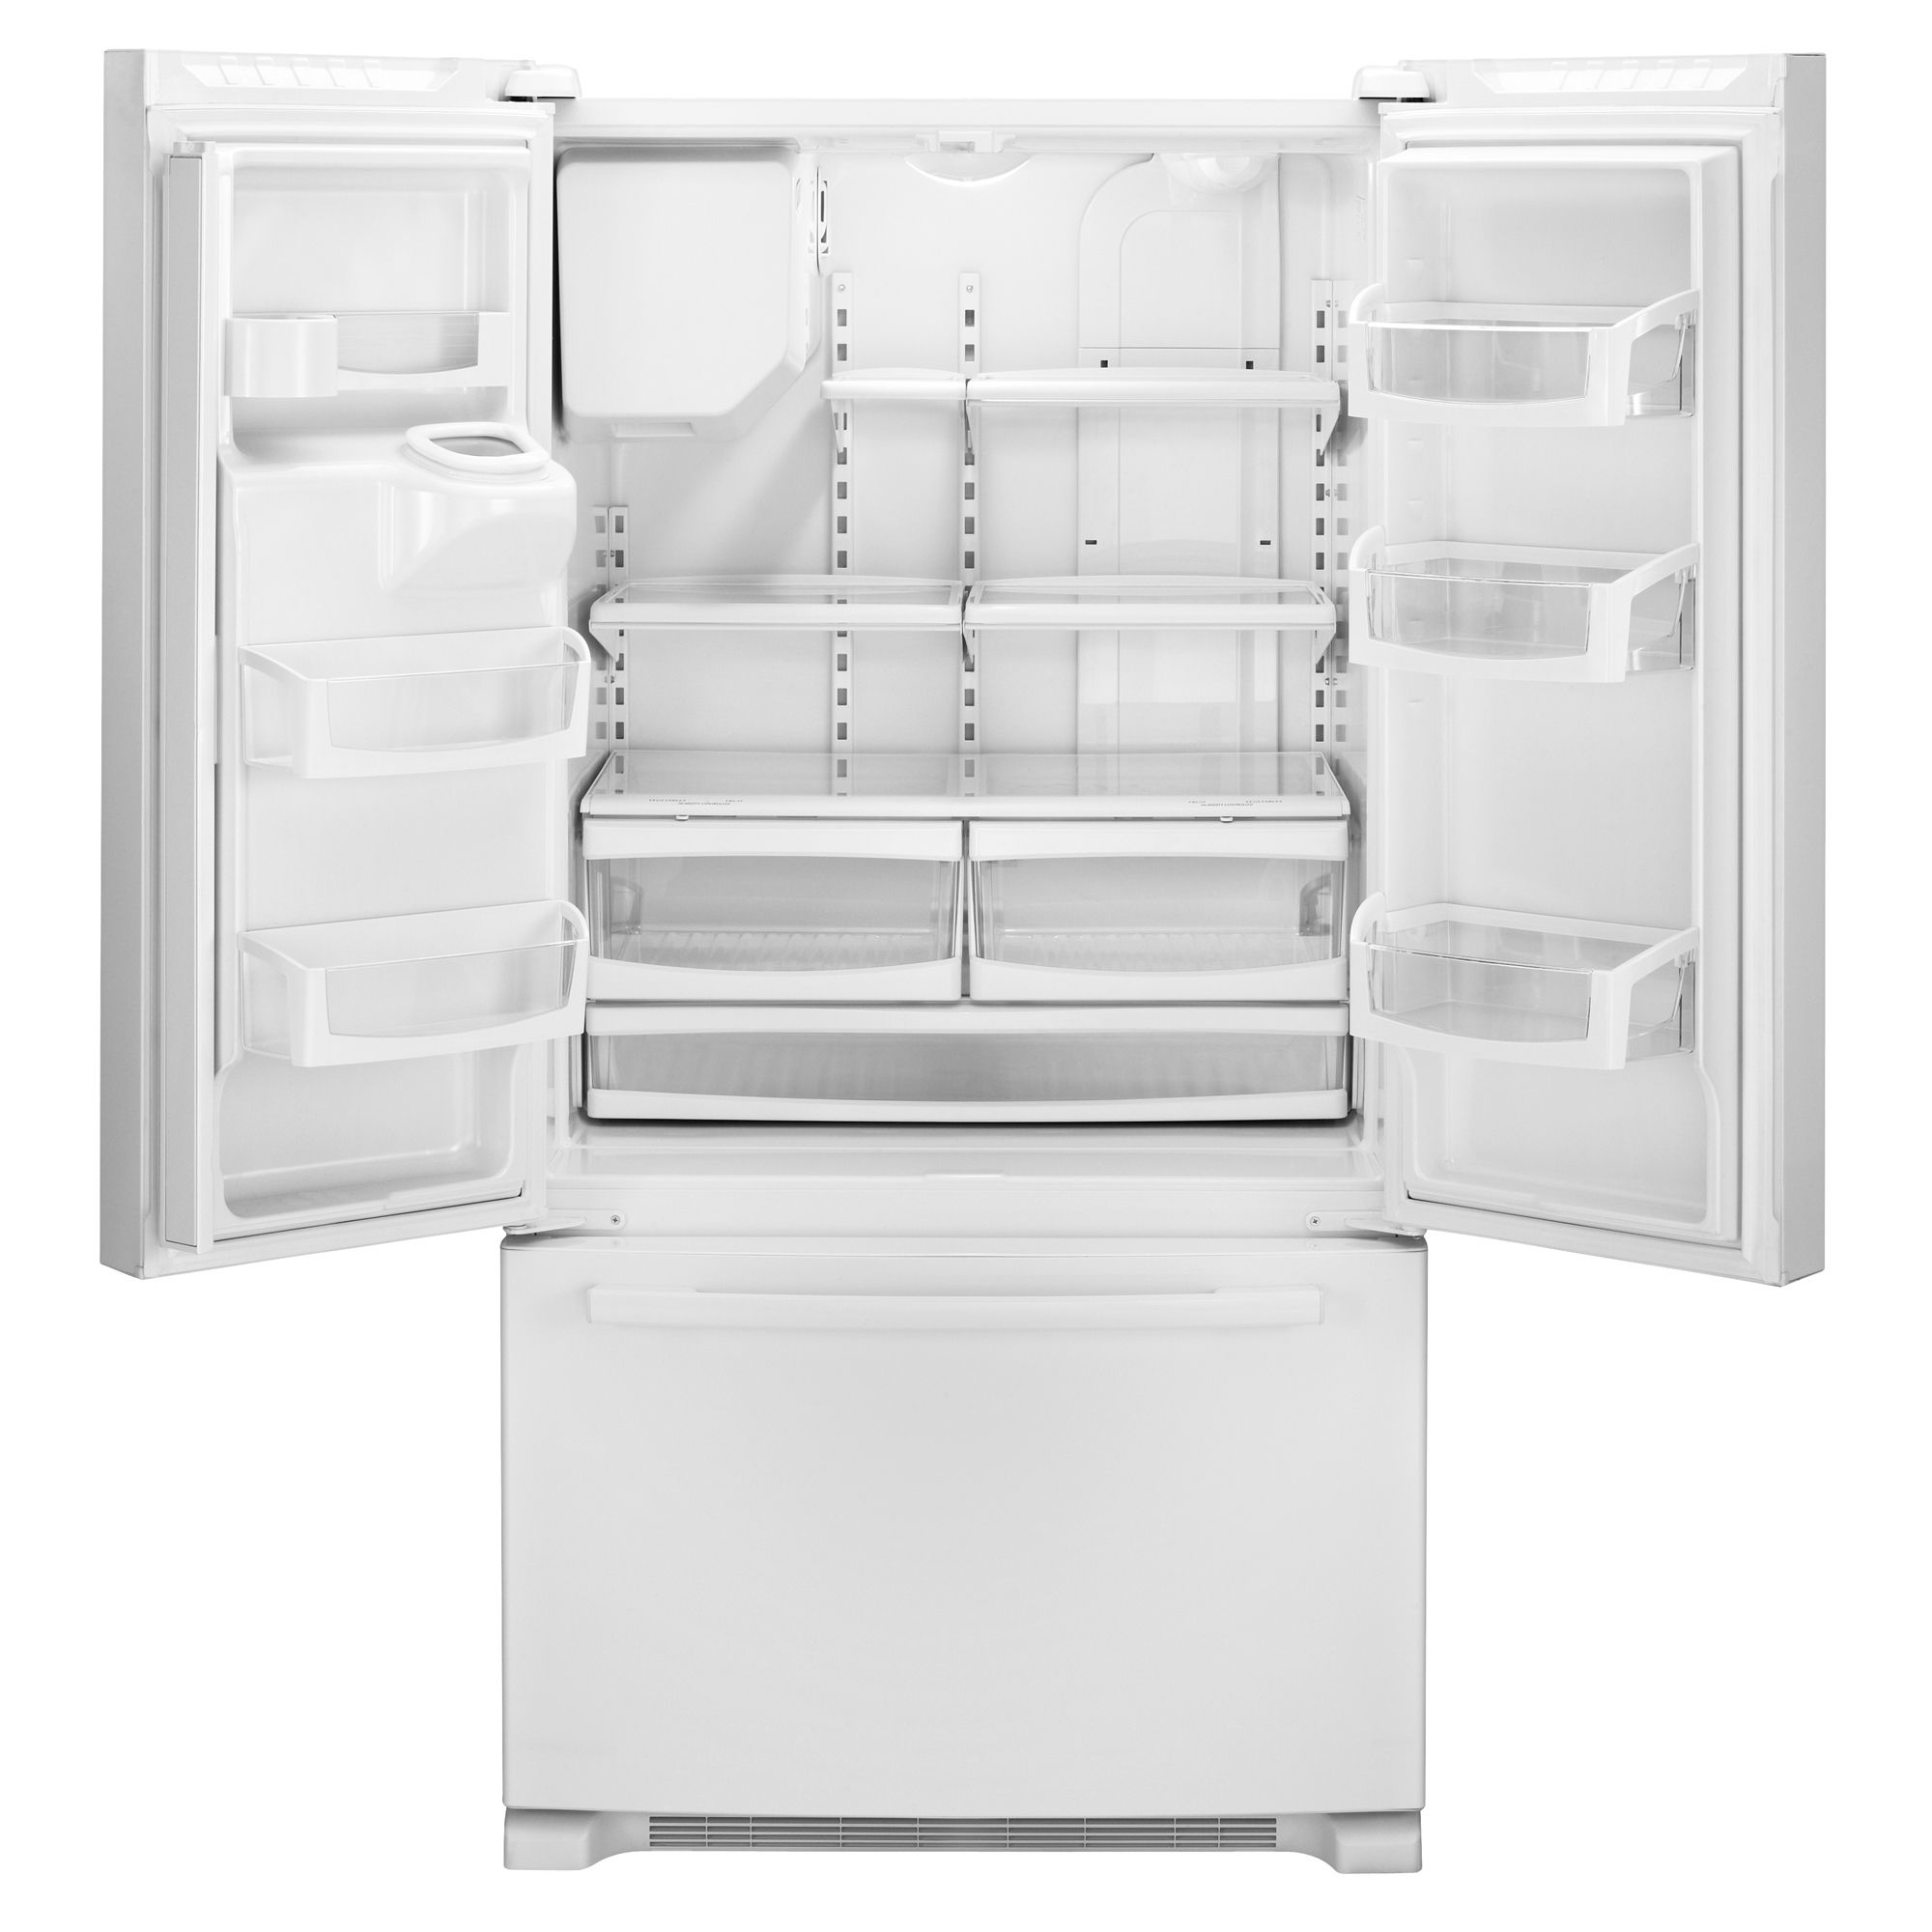 Whirlpool Gold 25.5 cu. ft. French Door Bottom Freezer Refrigerator - White